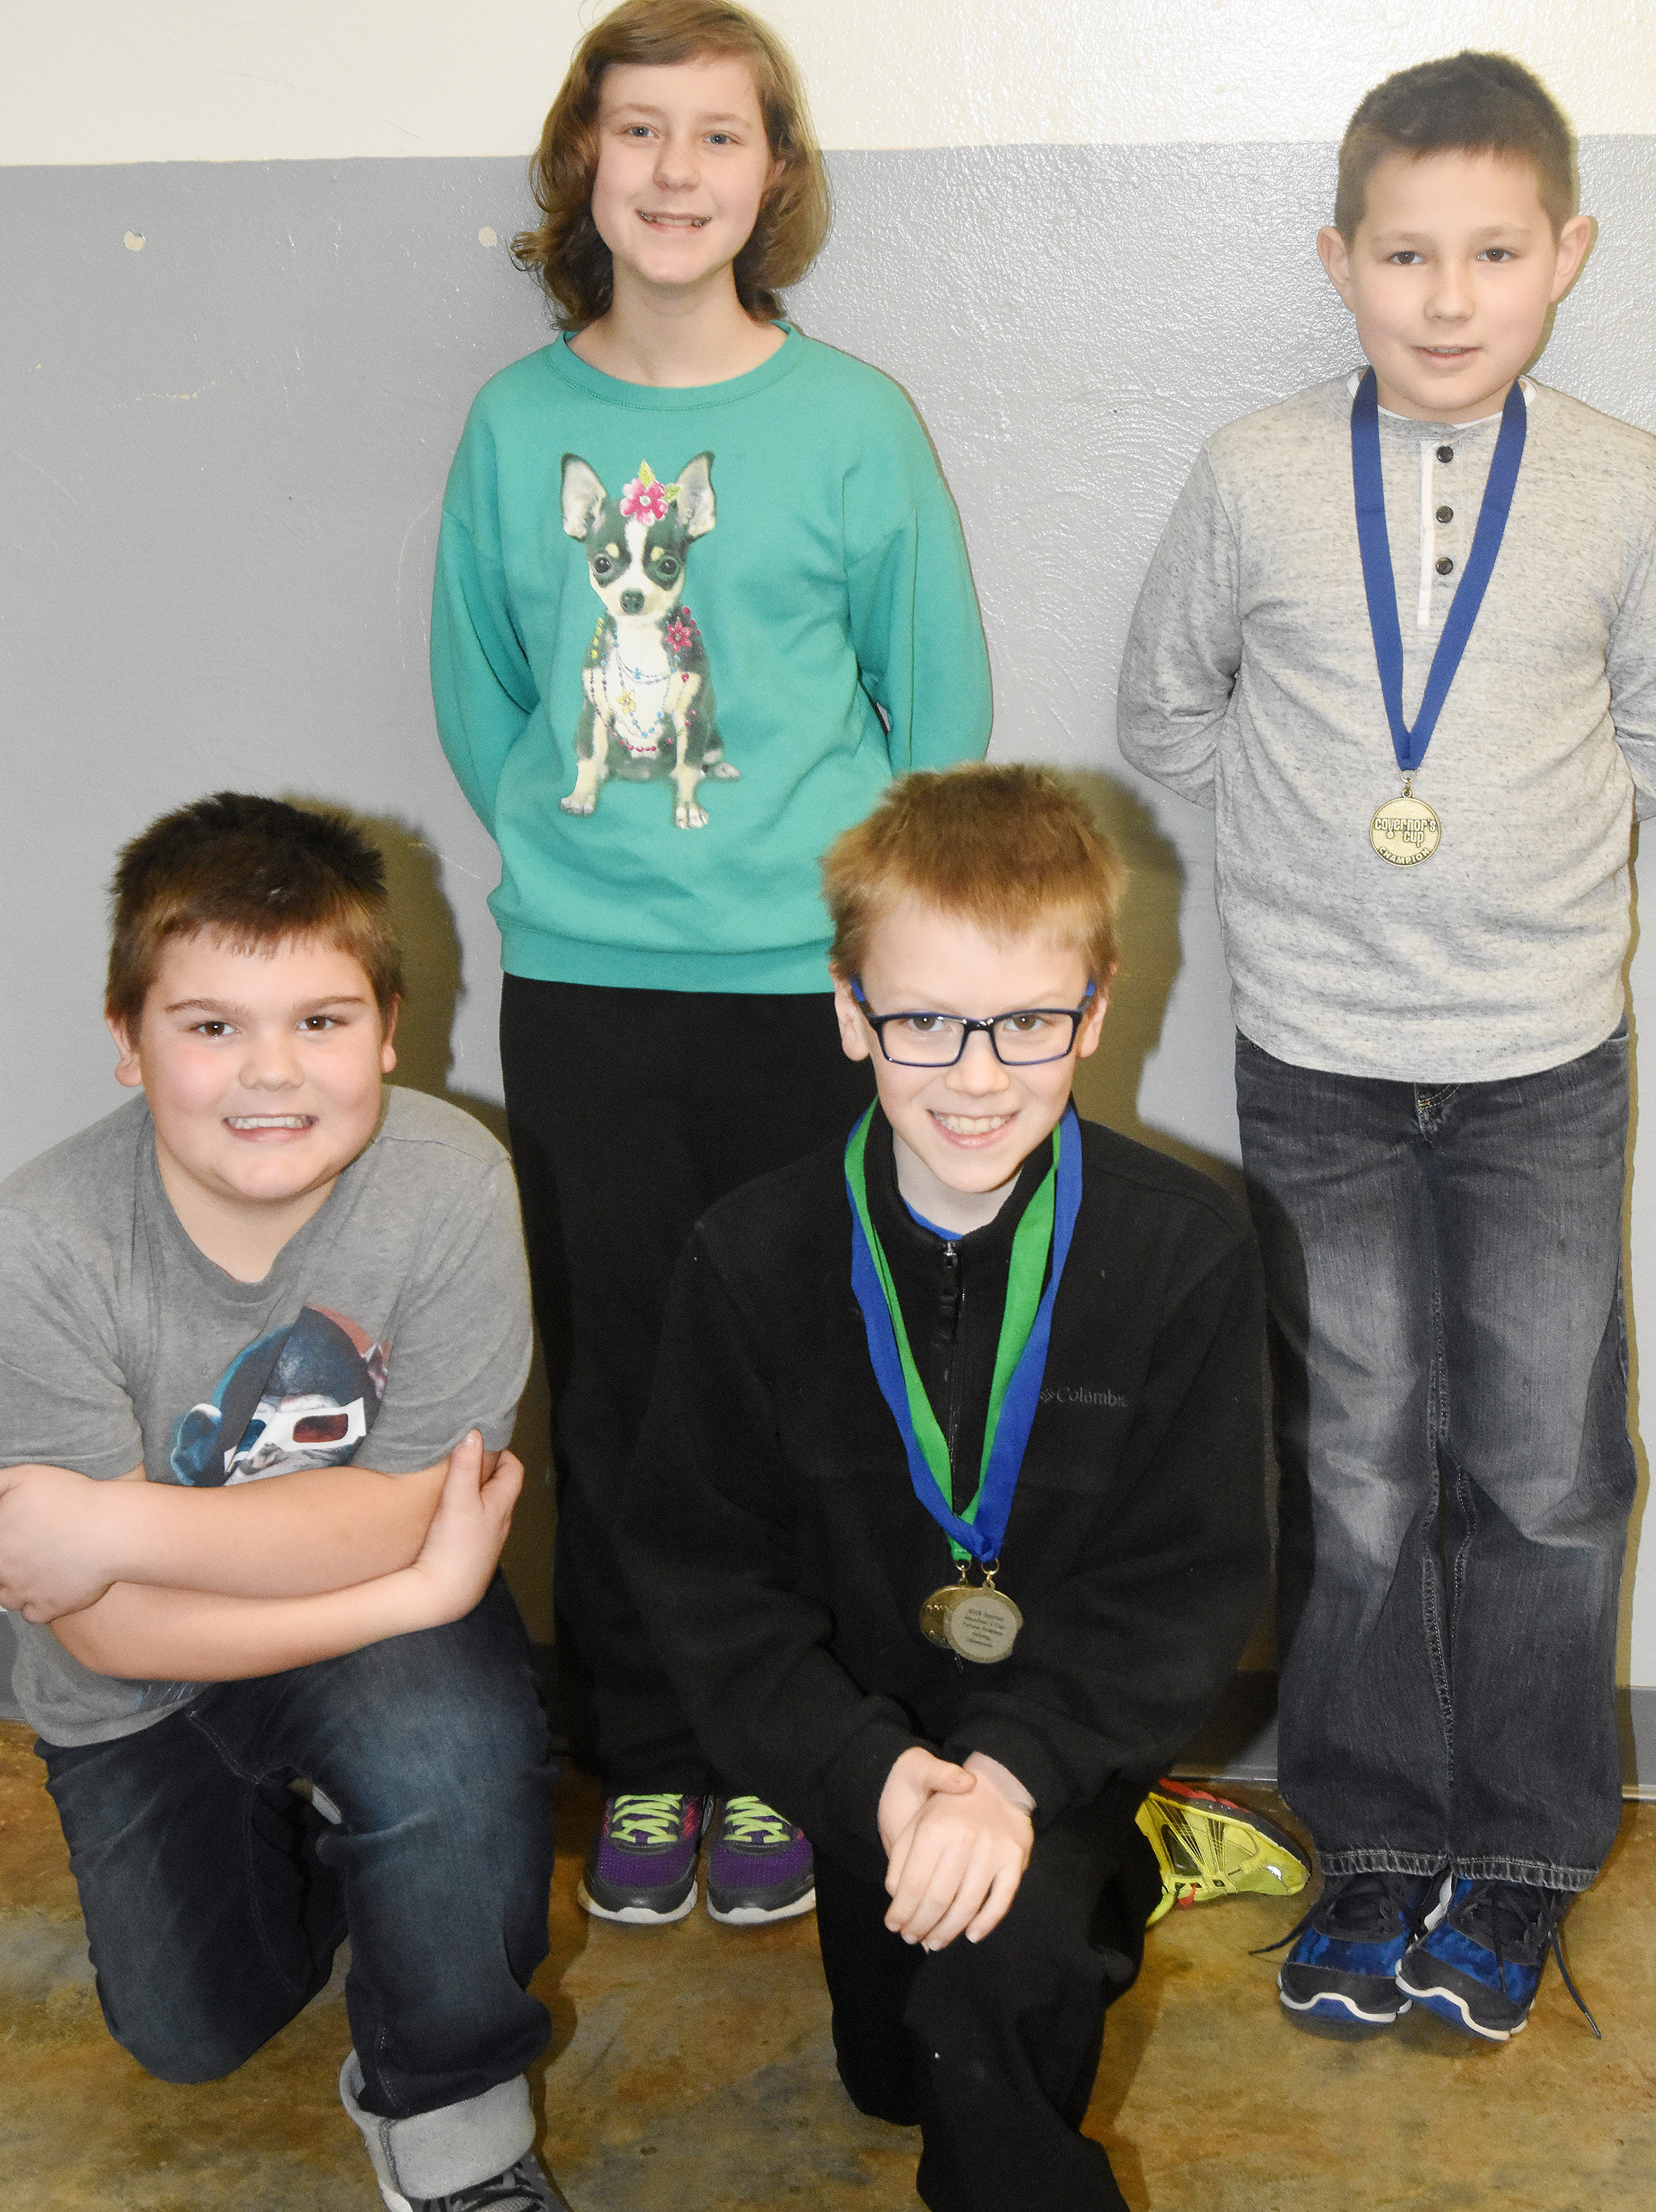 CES future problem solving students won first place at District Governor's Cup and advance to region competition. They are, from left, front, fifth-grader Logan England and fourth-grader Connor Coots. Back, fifth-grader Bryanna Fitzgerald and fourth-grader Grayson Dooley.